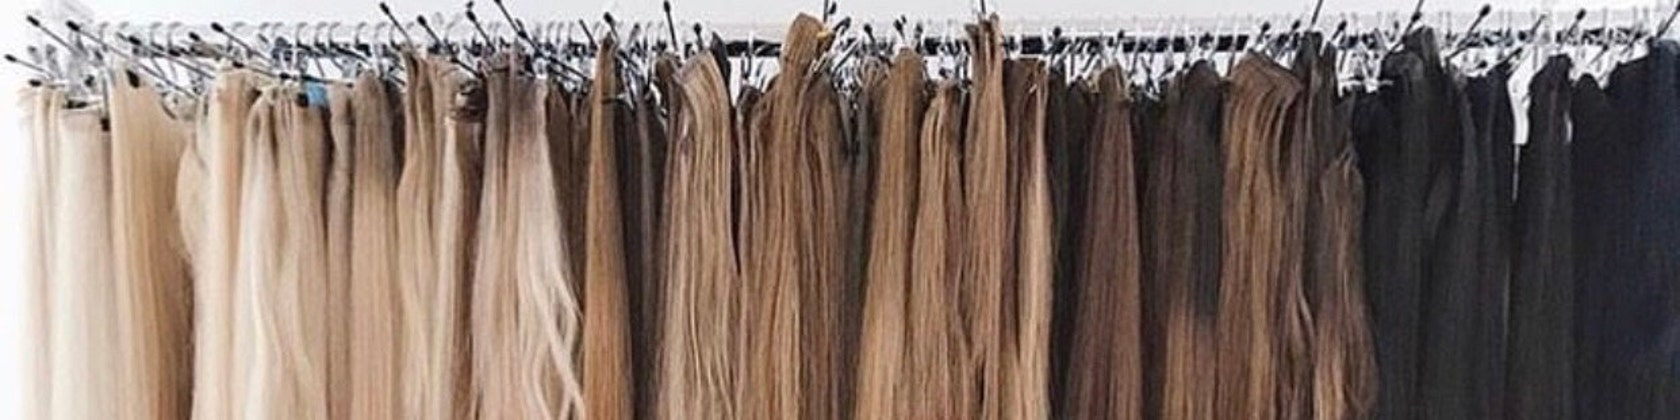 Ombre Balayage Custom Hair Extensions Von Sheextensions Auf Etsy